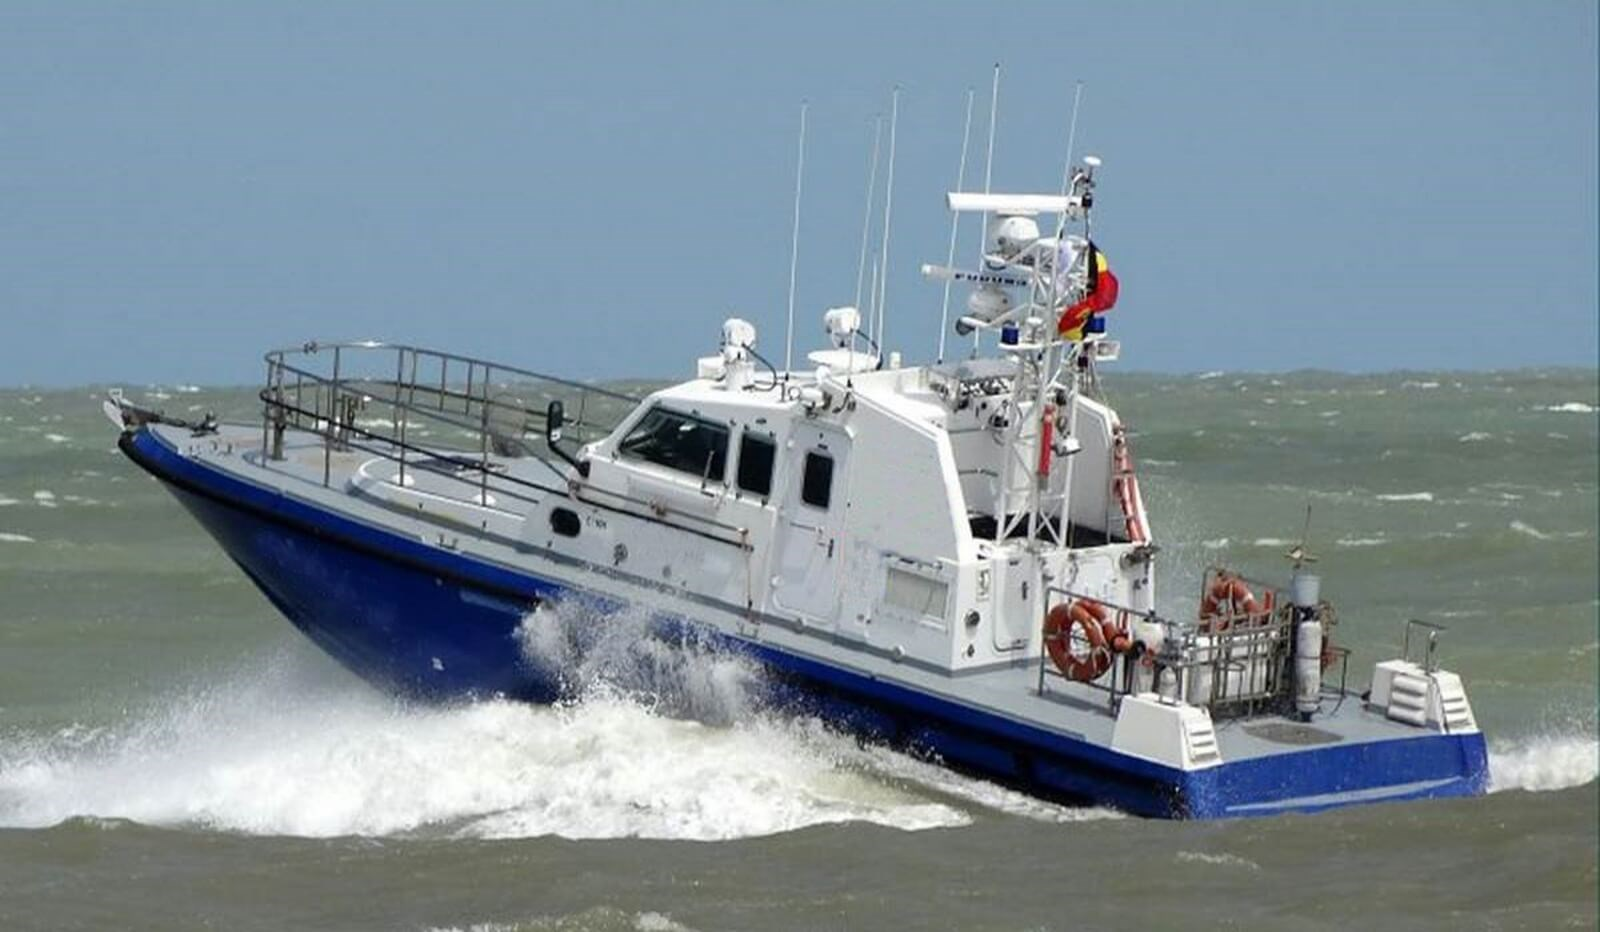 used police boat for sale 07591 (3)